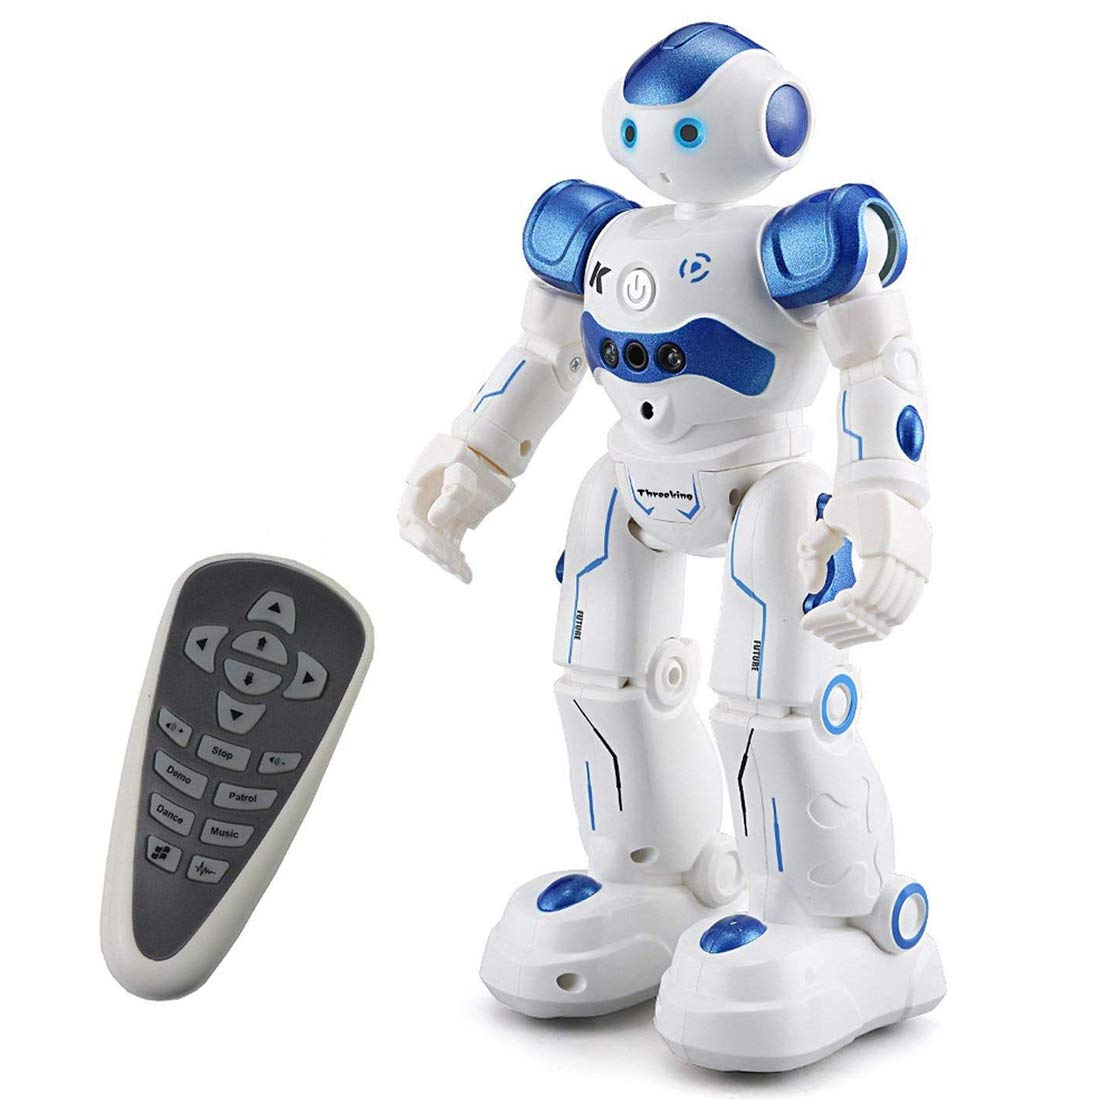 Threeking Rc Robot Toys Gesture Sensing Remote Control Programmable Robot Toy for 6+ Years Old Kids Birthday Present Gift